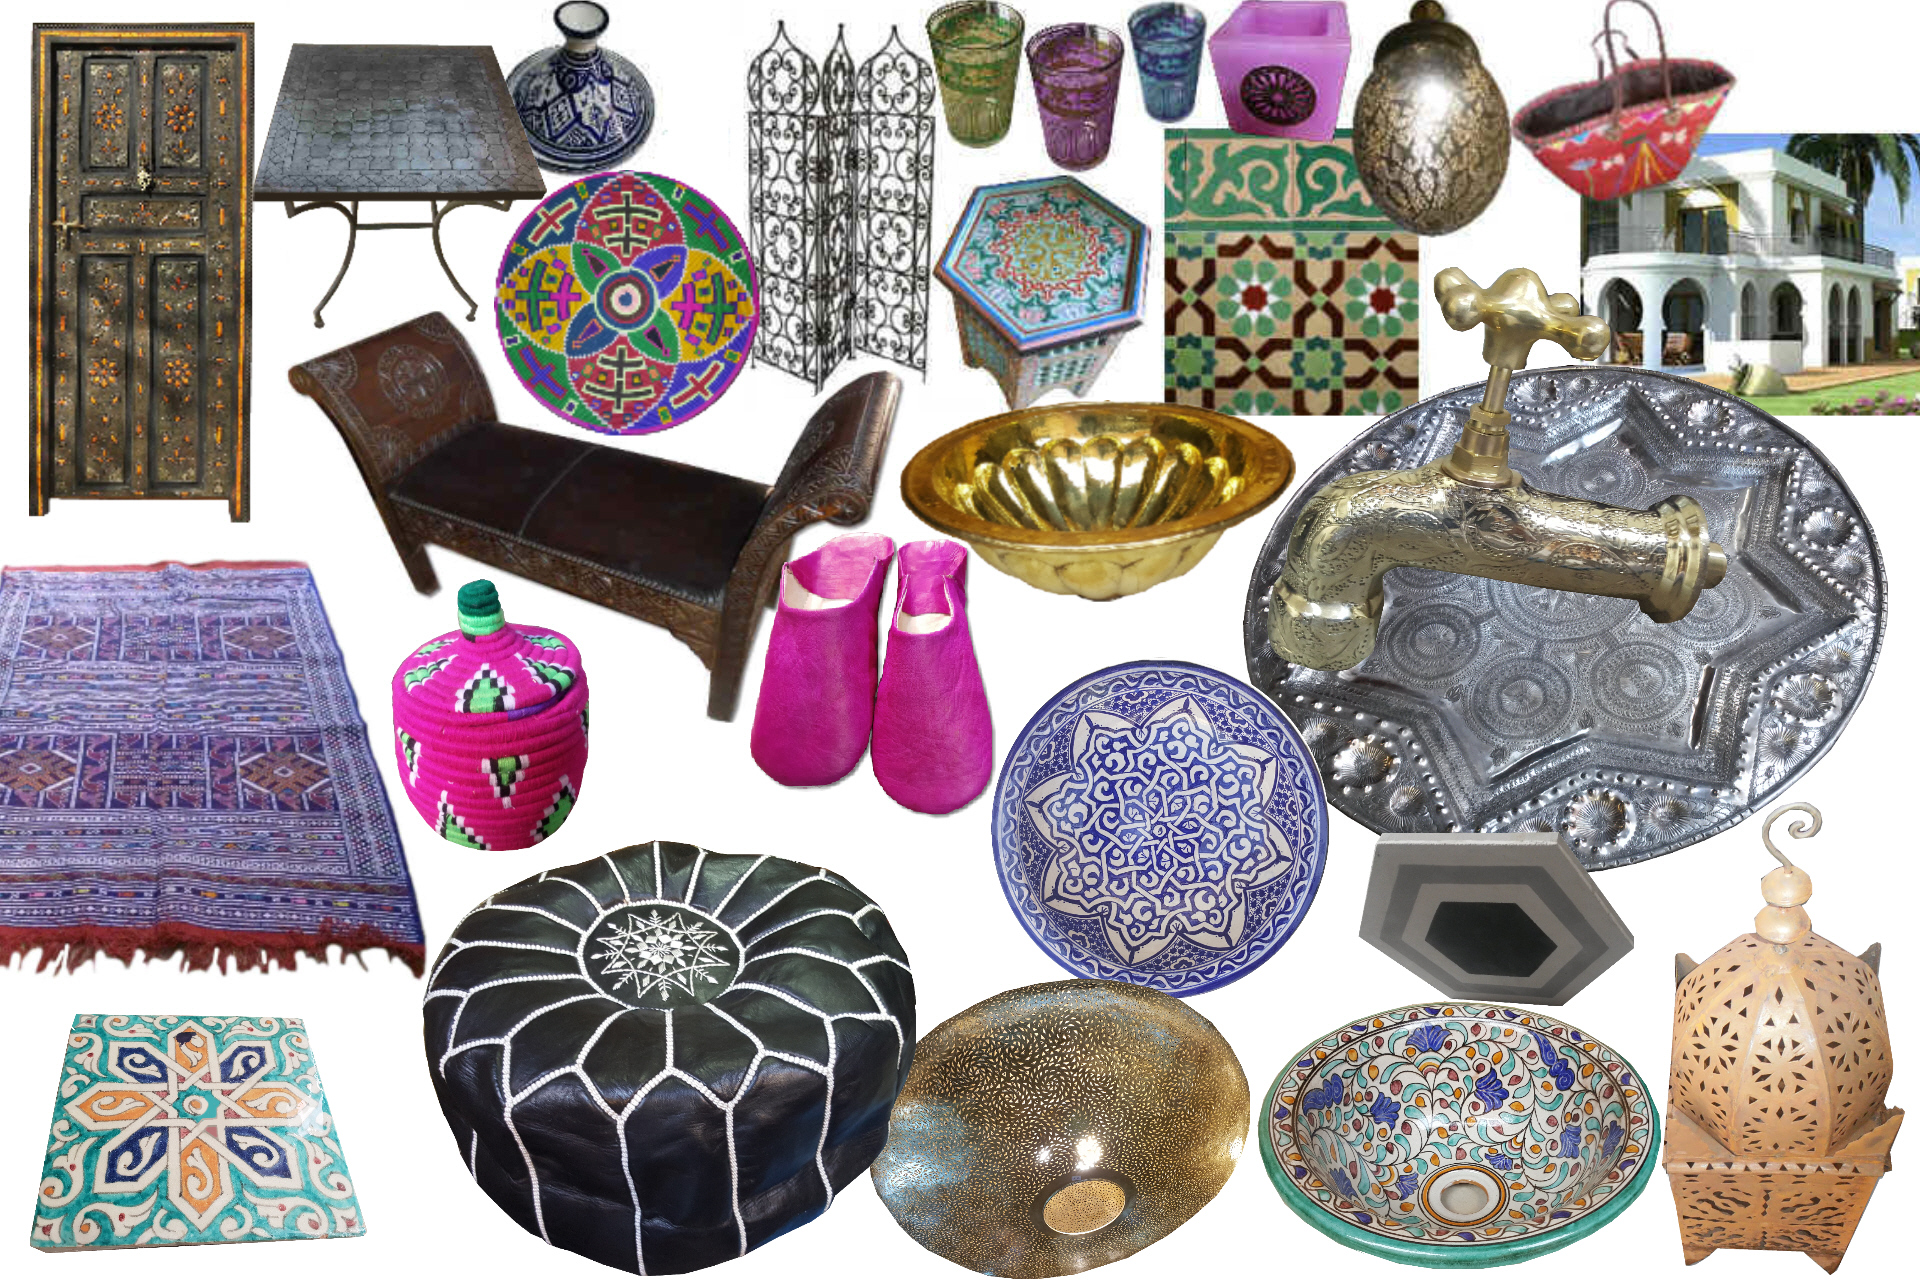 Moroccan art design,ironwork,Baskets,Oriental Lamps,Oriental furniture,tagines,mosaic tables, mosaic fountains,mosaic tiles, Tea accessories,Lanterns,hand painted ceramics,sofas,wrought ironwork,leather seat,offers,purchase,Products,Factory,Manufacturer, Morocco,Germany,exxot,exxotdesign,elegant sofa,casablanca,encaustic cement tiles,ceramic tiles, moroccan handmade encaustic cement tiles,marokkanische Zementfliesen, moroccan leather,kunstschmied, paravent, wooden side table,fez, agadir,chest of drawers,moroccan armoires,lantern,fontaine,cabinet,,wooden fontaine,sofa decor accessories,leather stools, marrakech,wrought iron frame,handmade lamps,furniture,garden furniture, hand-woven carpets,Bowl Shaped Woven Basket,Breadbasket,Coaster,Hand Woven Furniture,Men Slippers Babouche,Women Slippers Babouche, Baskets,Berber Kilim Pillow Cover,Caidal Tent,deco gypsum, Men Jalaba,Rugs,fossil sink,ceramic sink,brass sink,faucet,Women Jalaba,